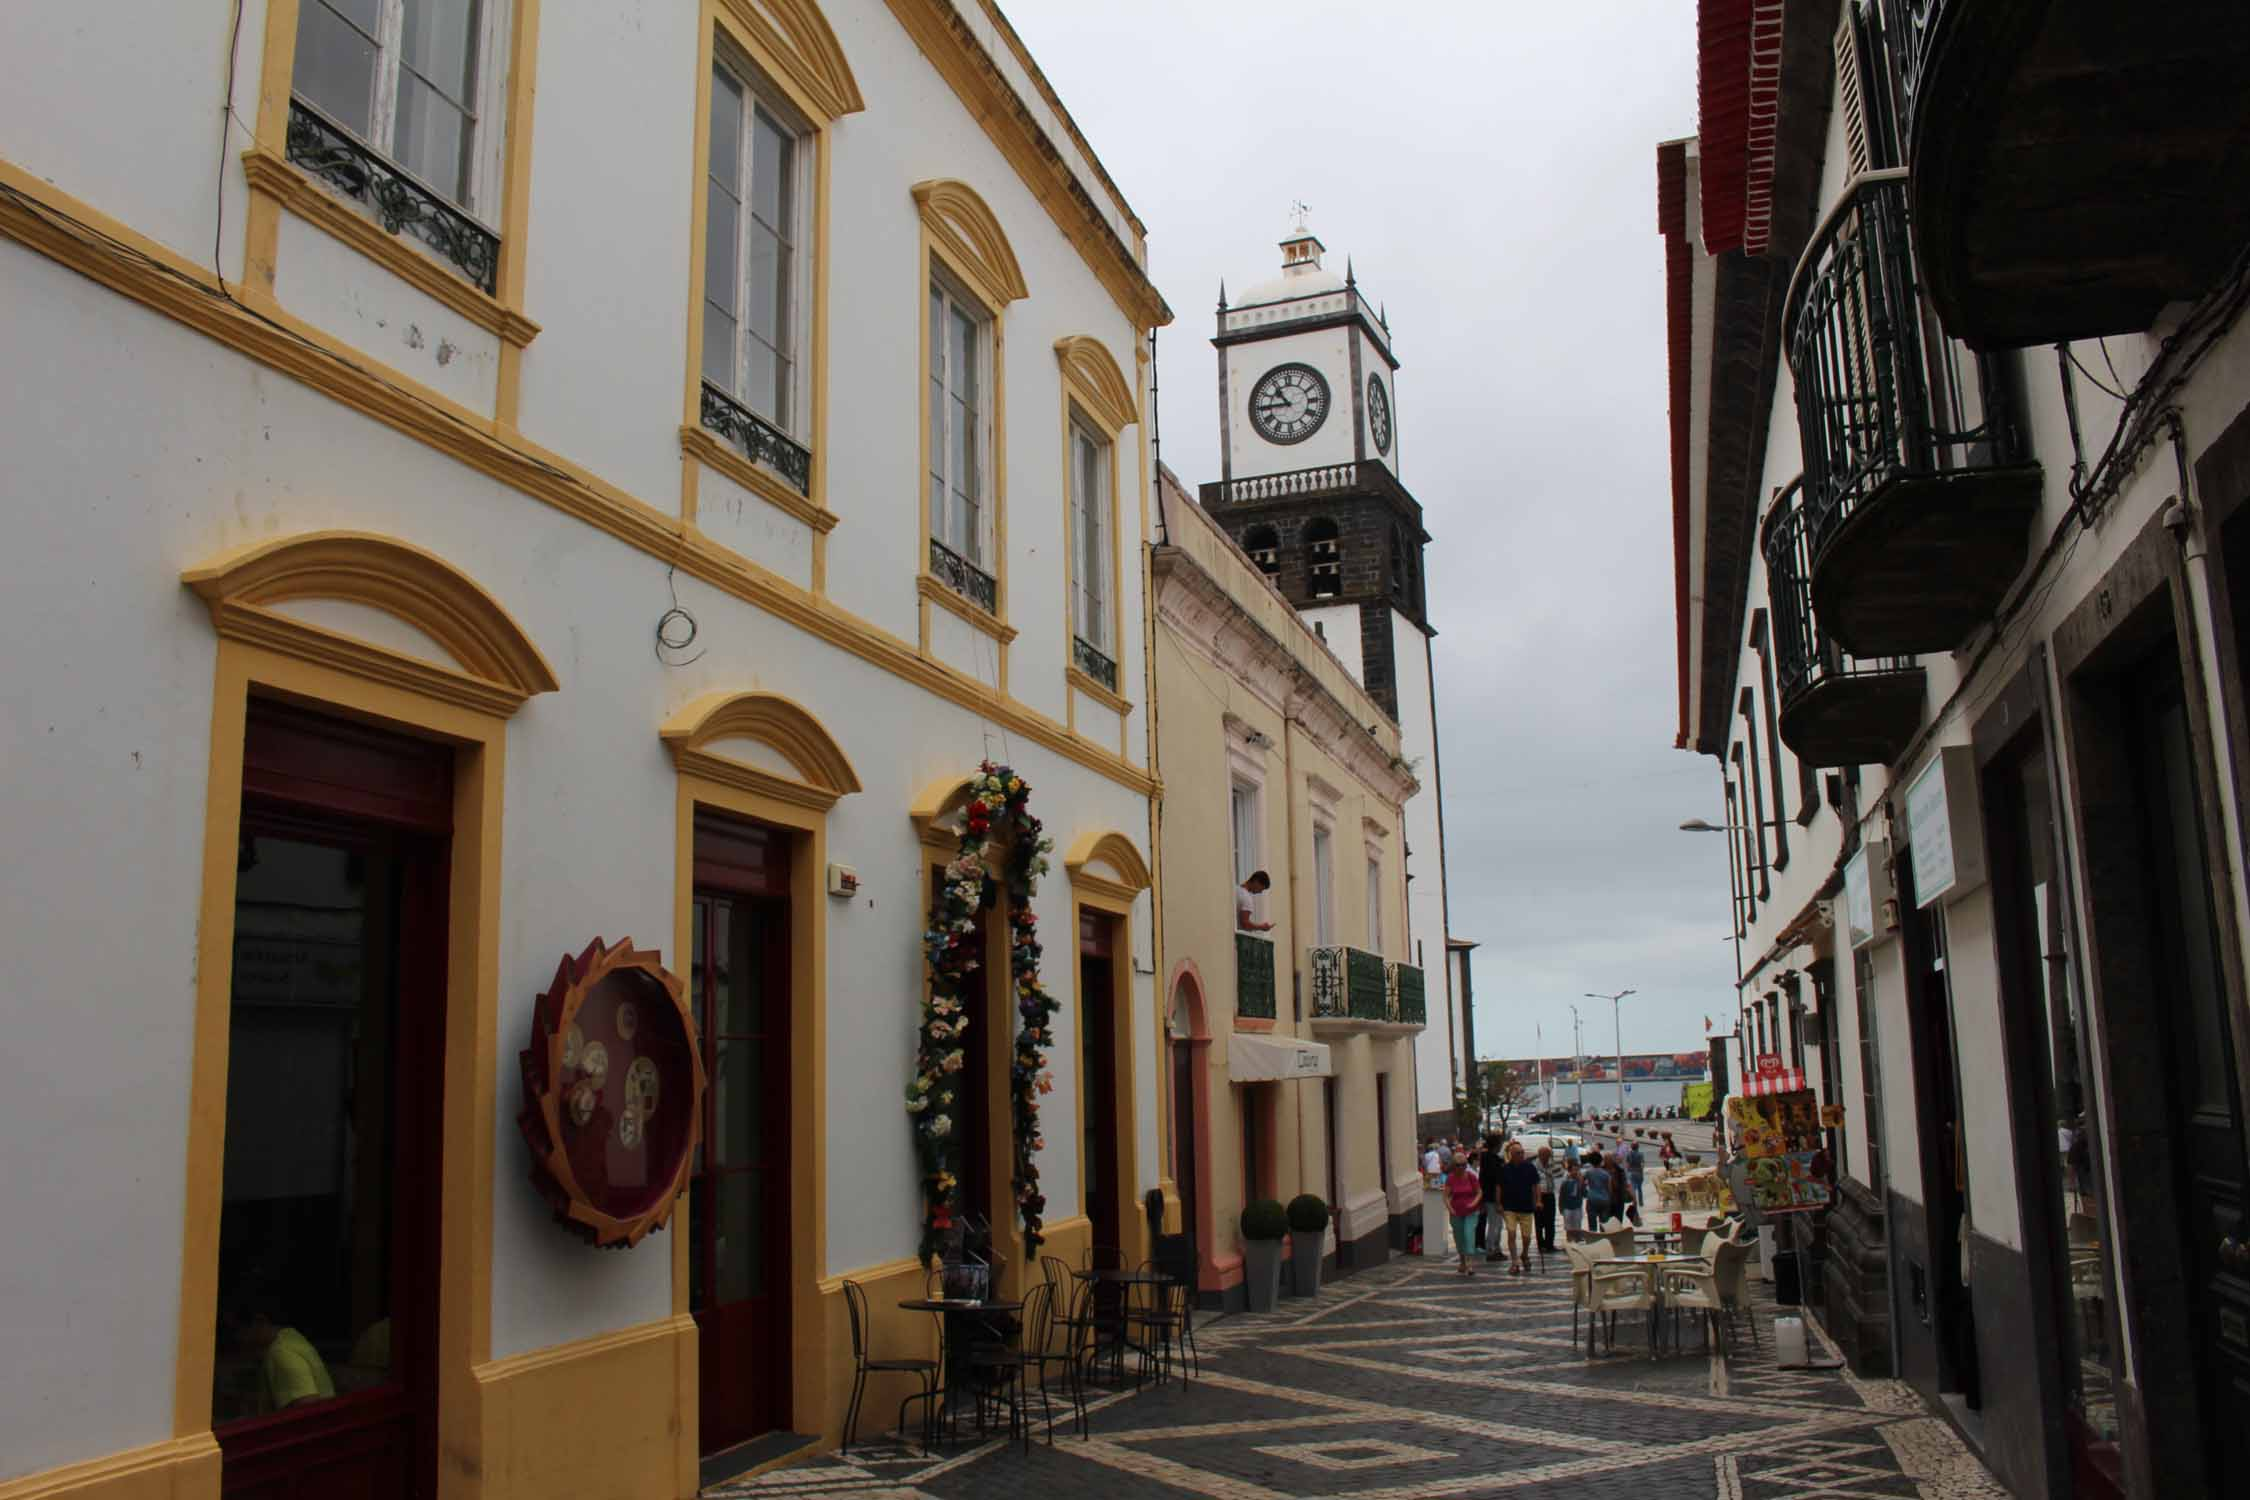 A street of Ponta Delgada and the Matriz church, São Miguel island, Azores